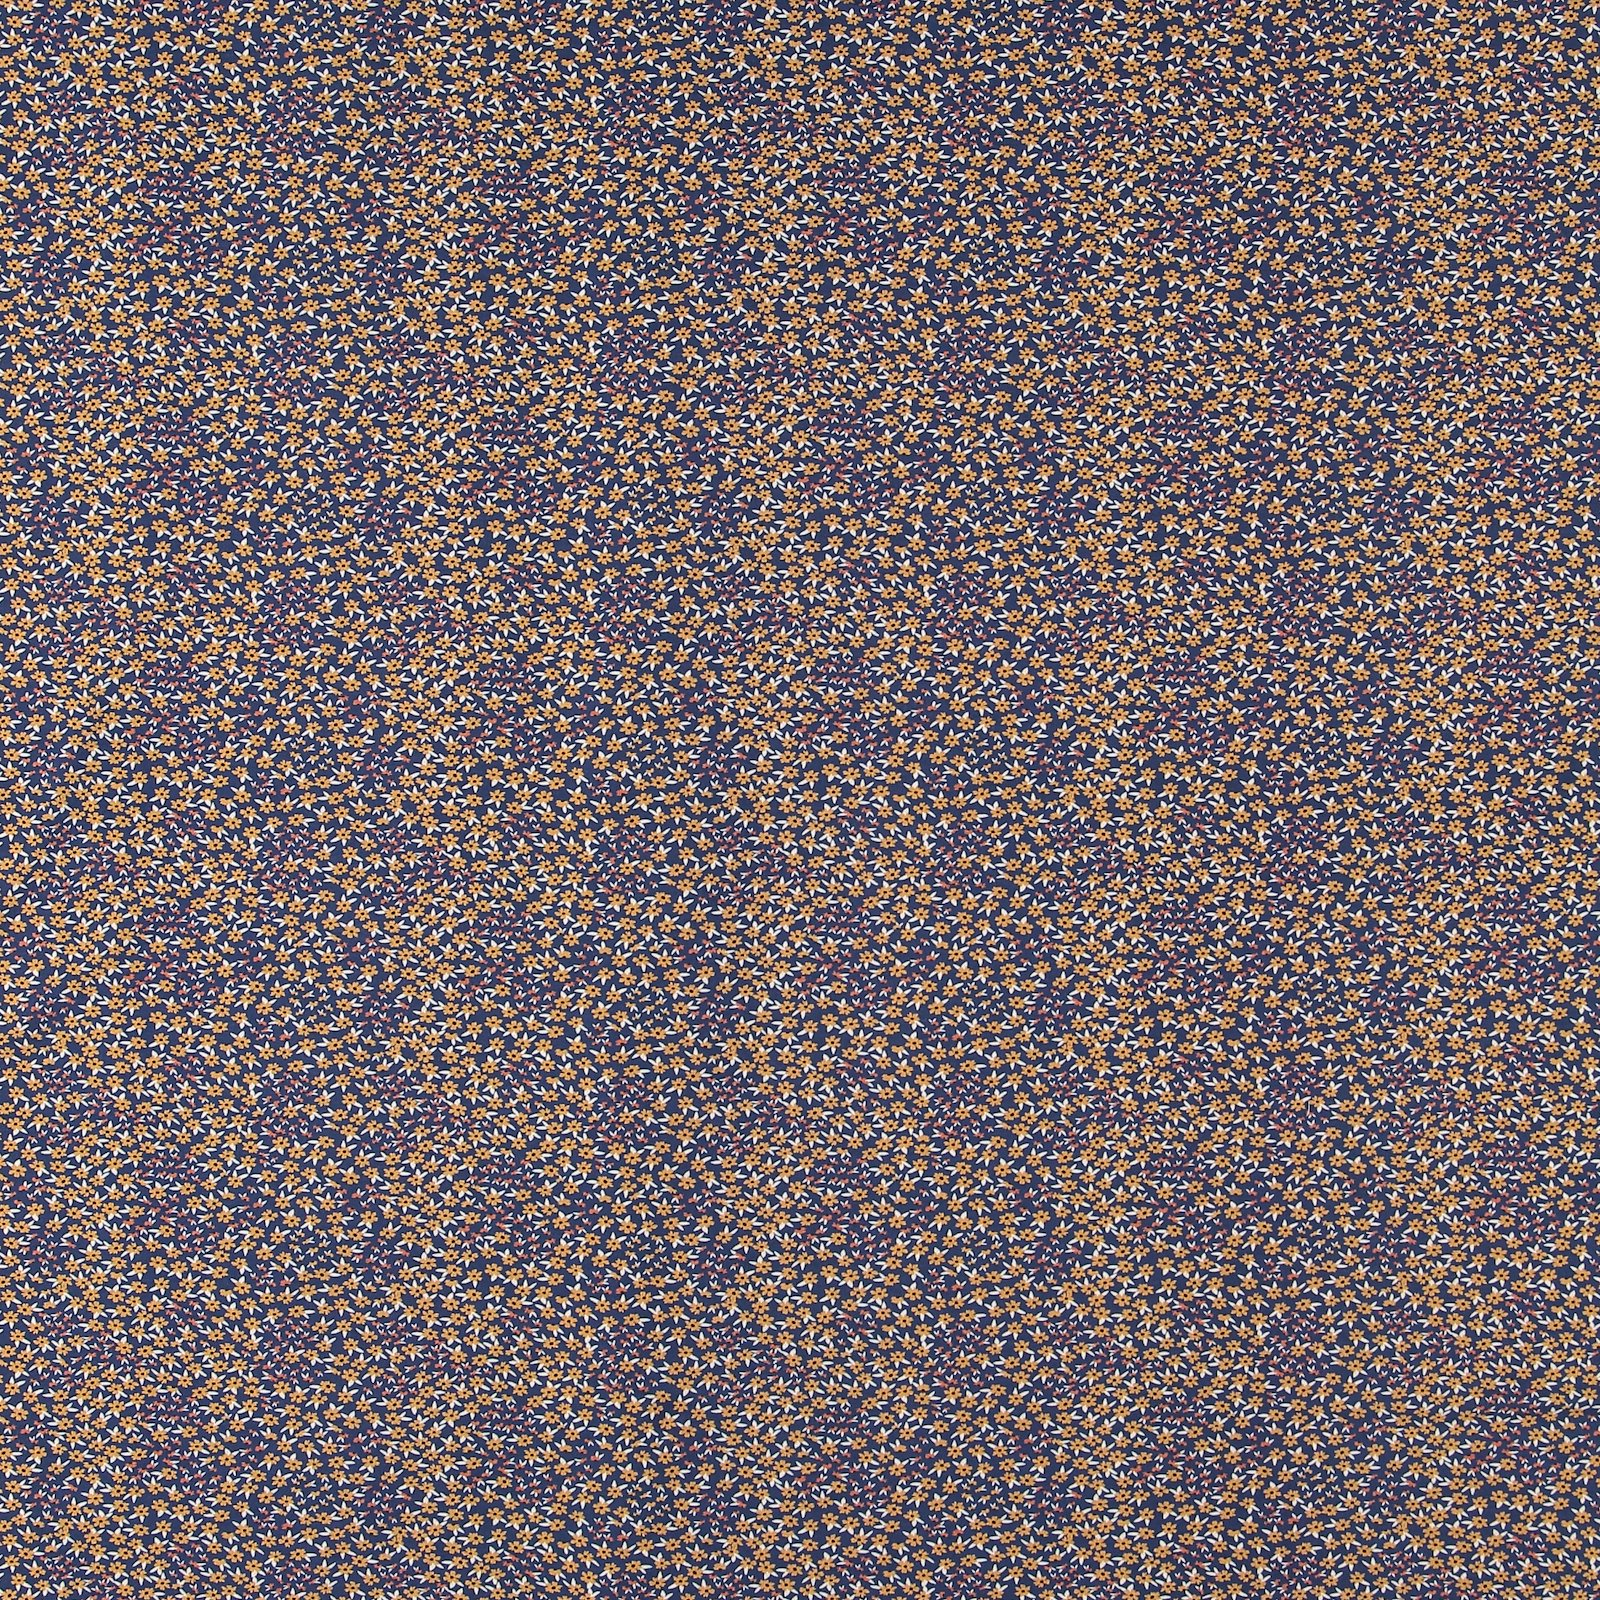 Viscose str jersey navy w curry flowers 272632_pack_sp